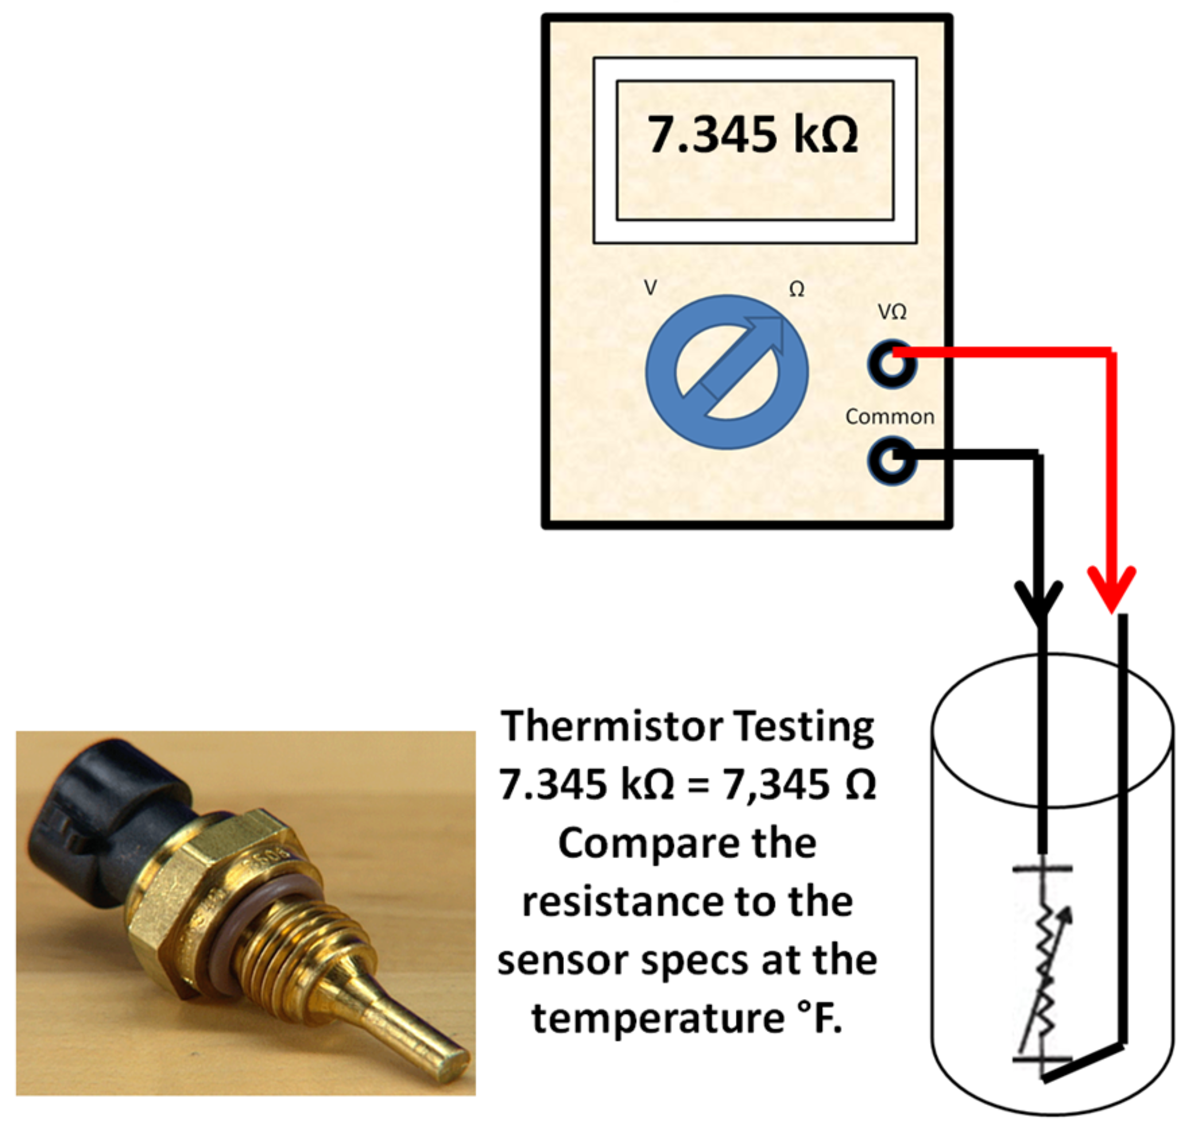 Measuring resistance of a Temperature Sensor.